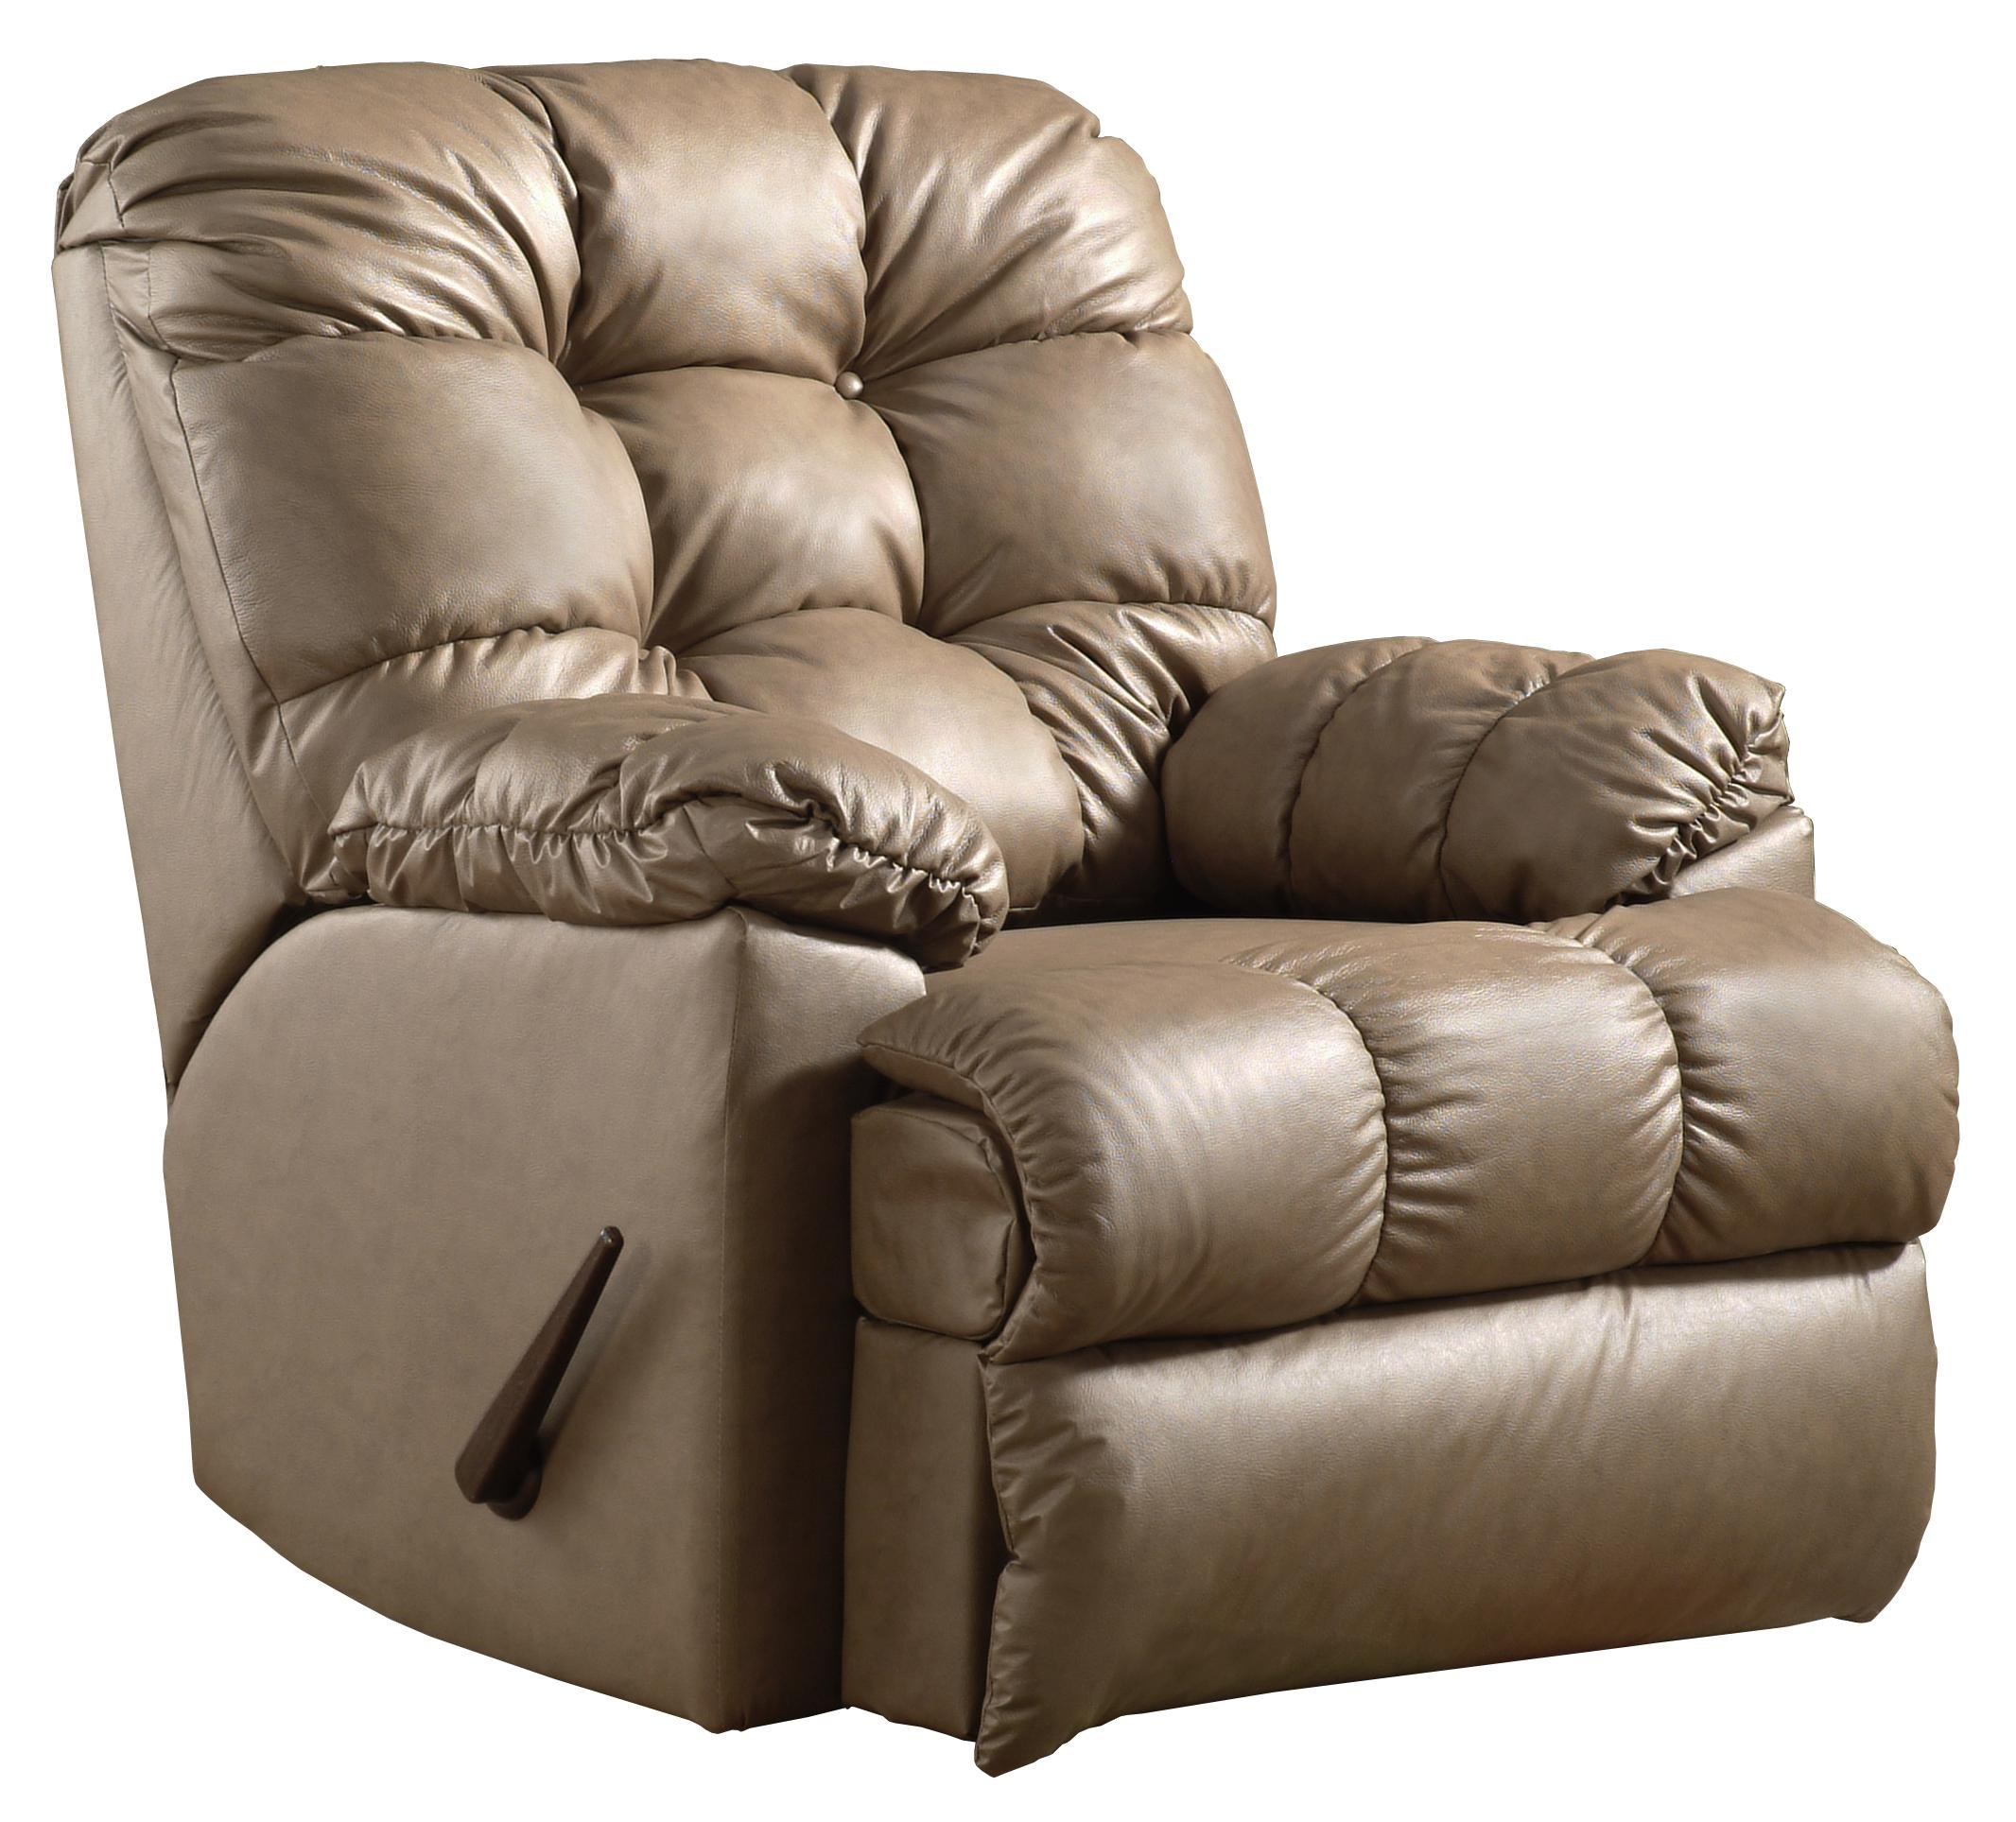 recliner shown may not represent exact features indicated - Wall Hugger Recliner